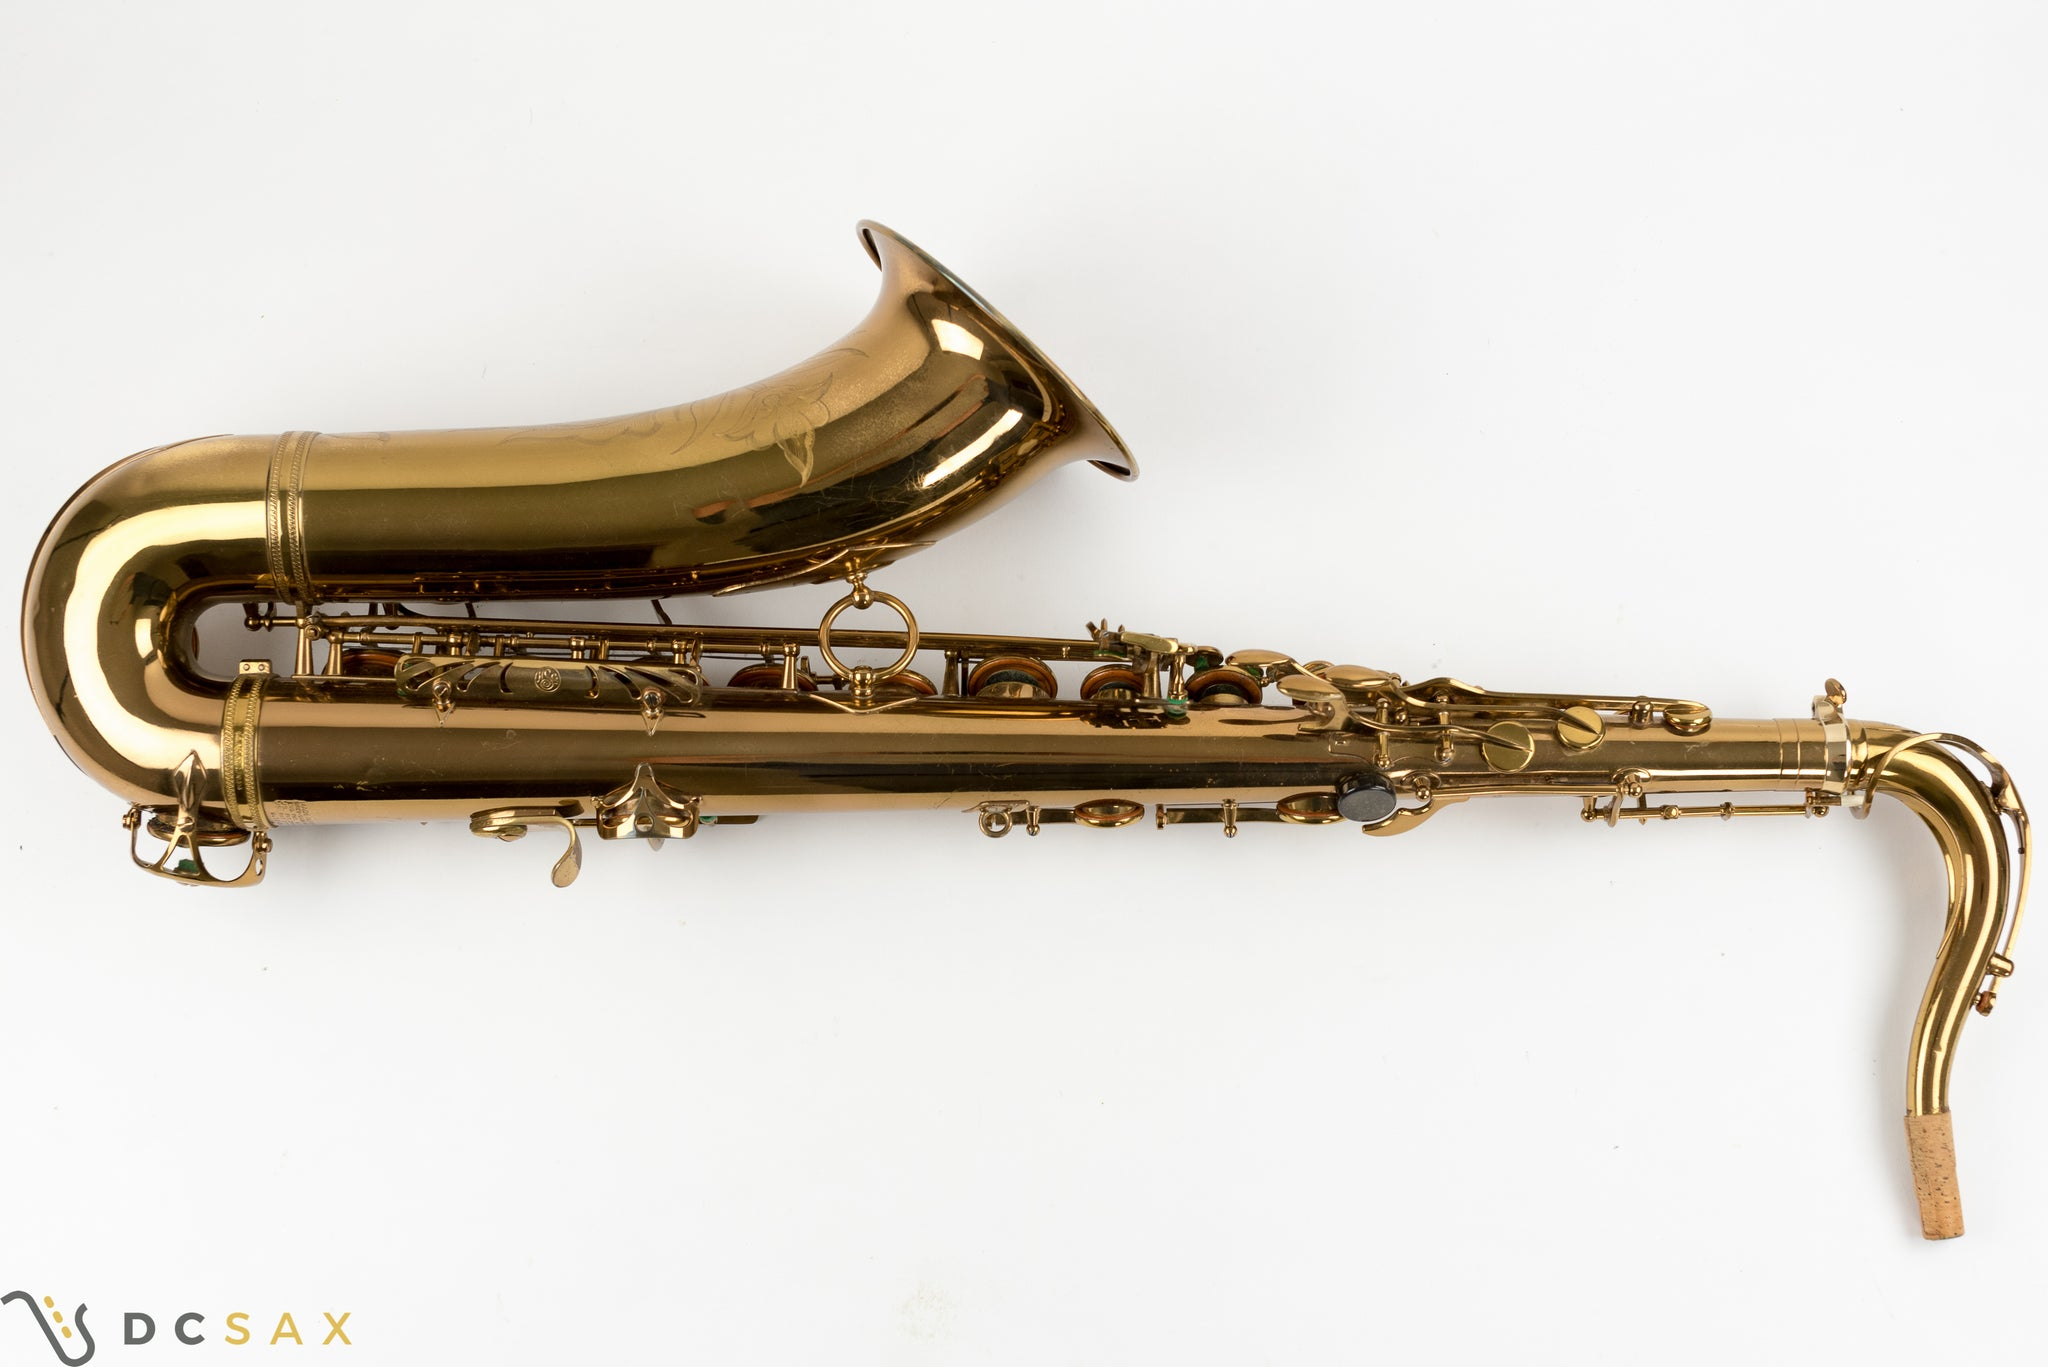 1957 73,xxx Selmer Mark VI Tenor Saxophone, 99.9% Original Lacquer, Near Mint